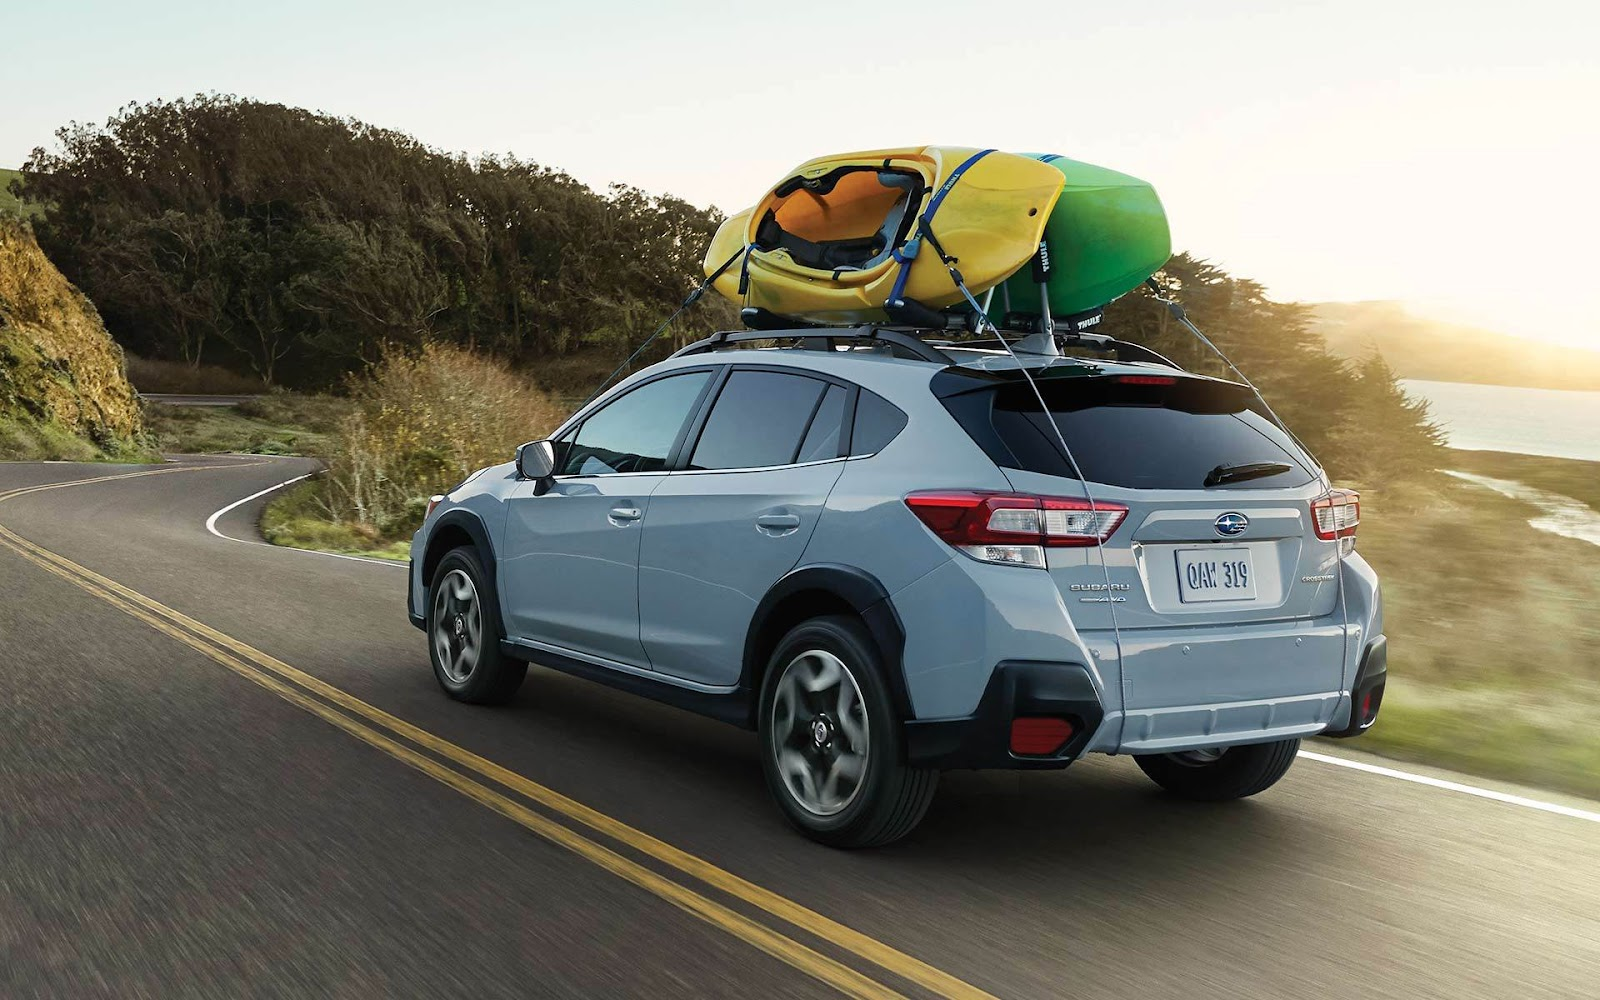 If You Live In The Ozarks And Drive A Subaru Crosstrek It S More Than Just Car Not Cliché Marketing Ploy Kind Of Way